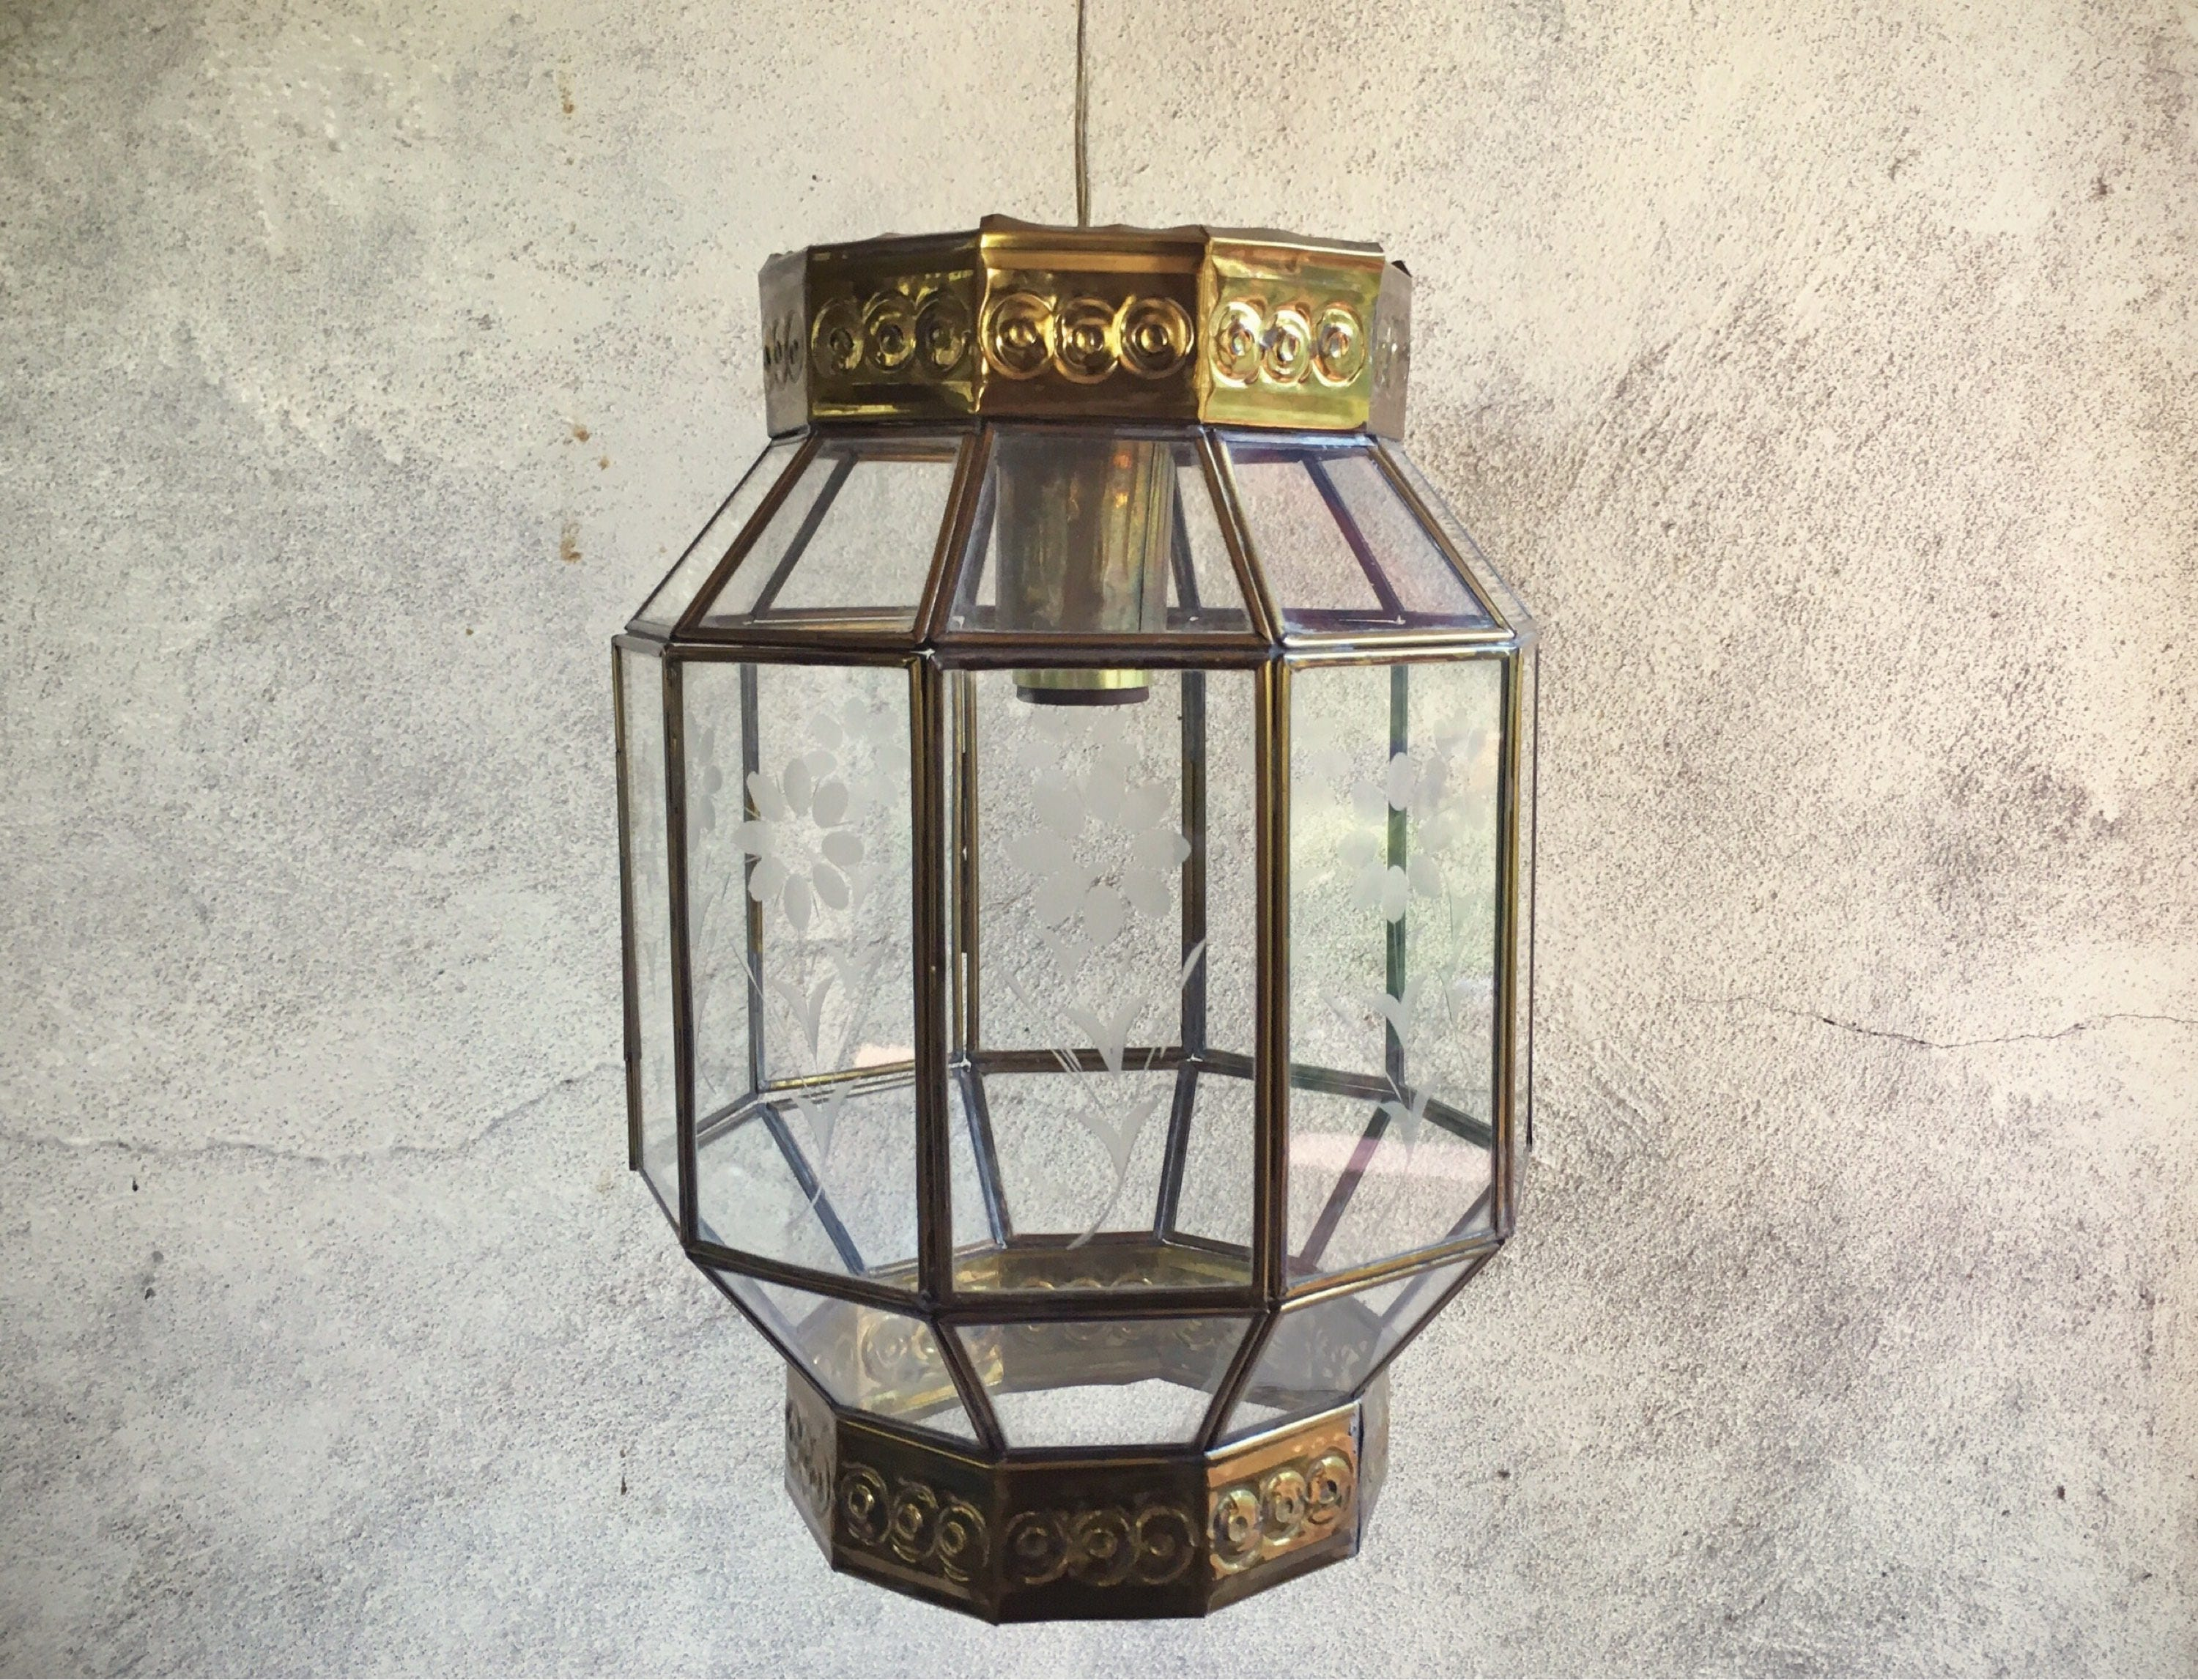 Vintage mexican etched glass brass hanging lamp bohemian decor vintage mexican etched glass brass hanging lamp bohemian decor pendant light fixture pendant lighting mexican chandelier hanging lights arubaitofo Gallery